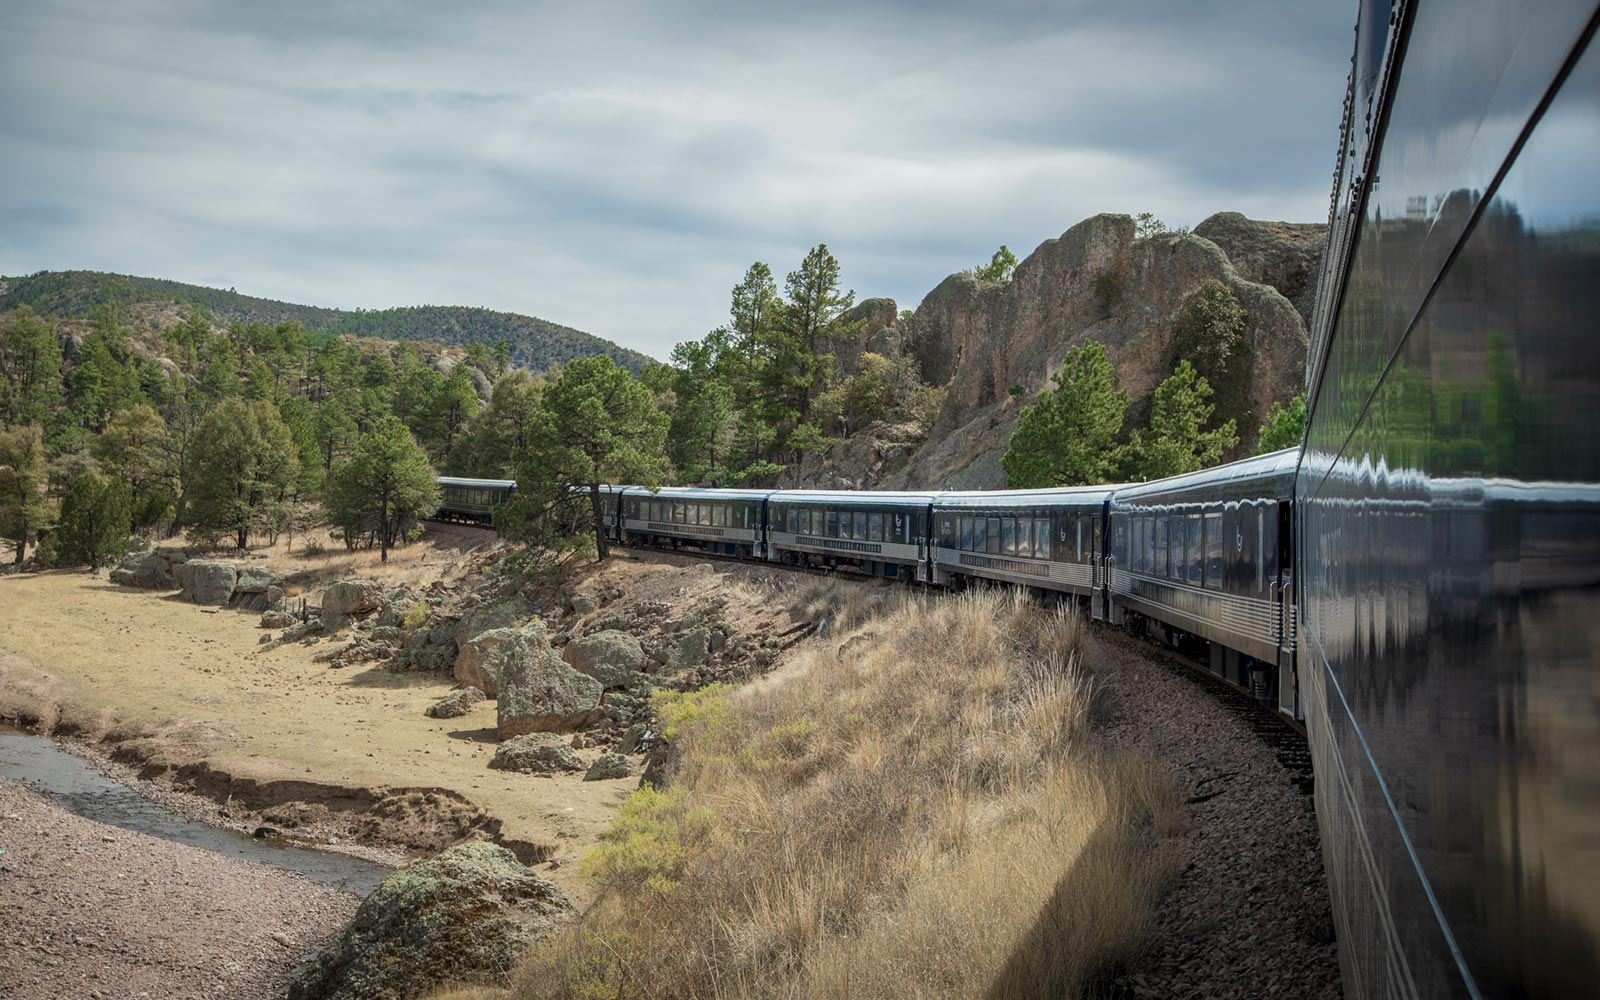 Copper Canyon Railroad, Mexico